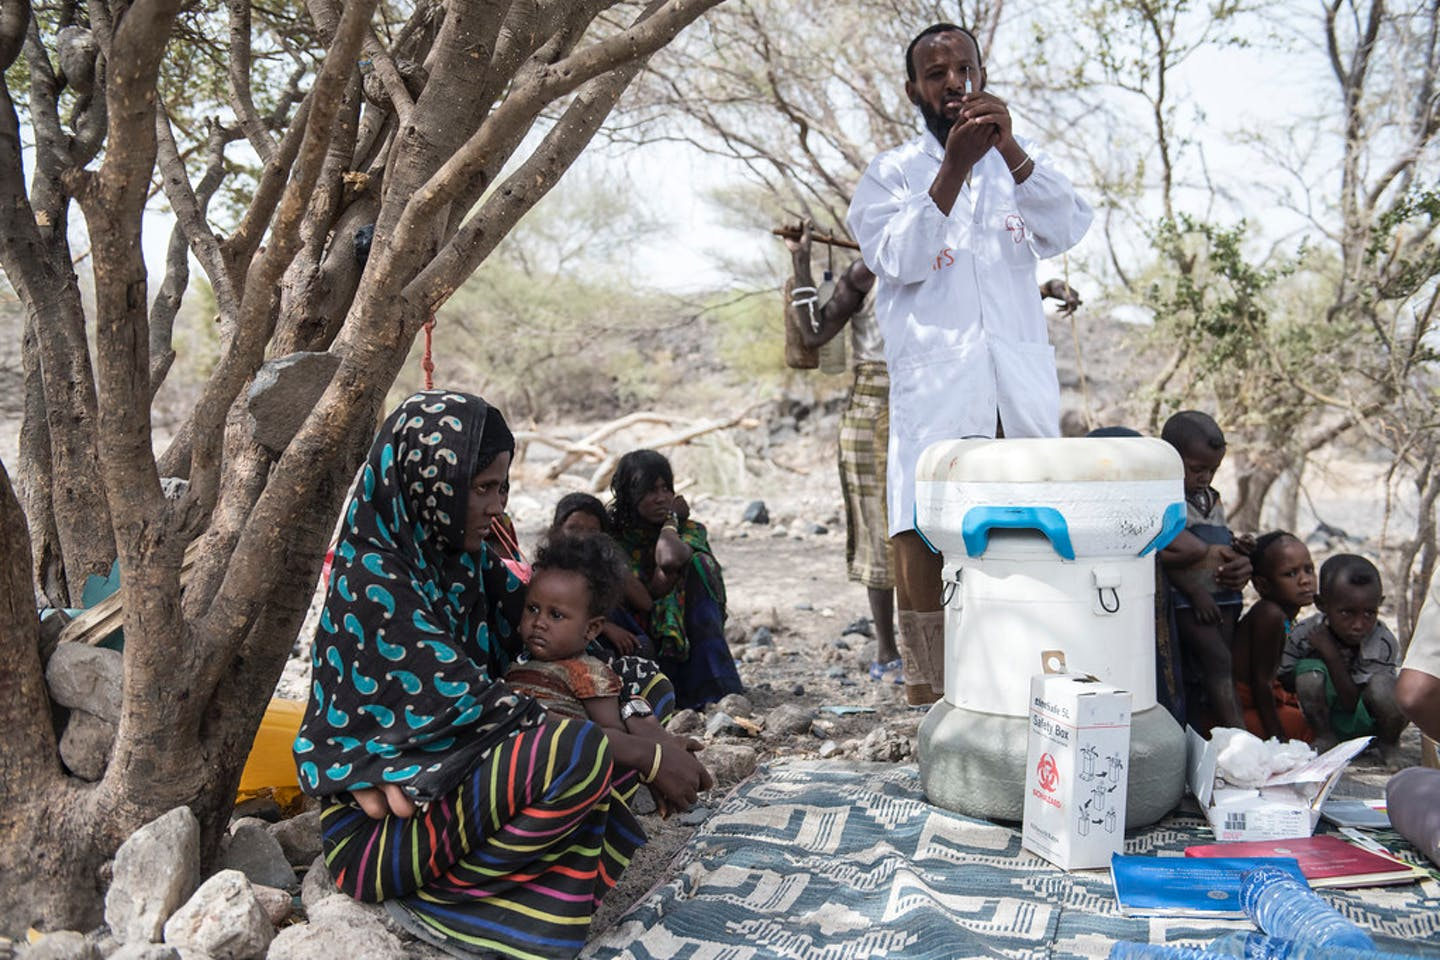 Mobile health team giving vaccines to a rural community in Ethiopia